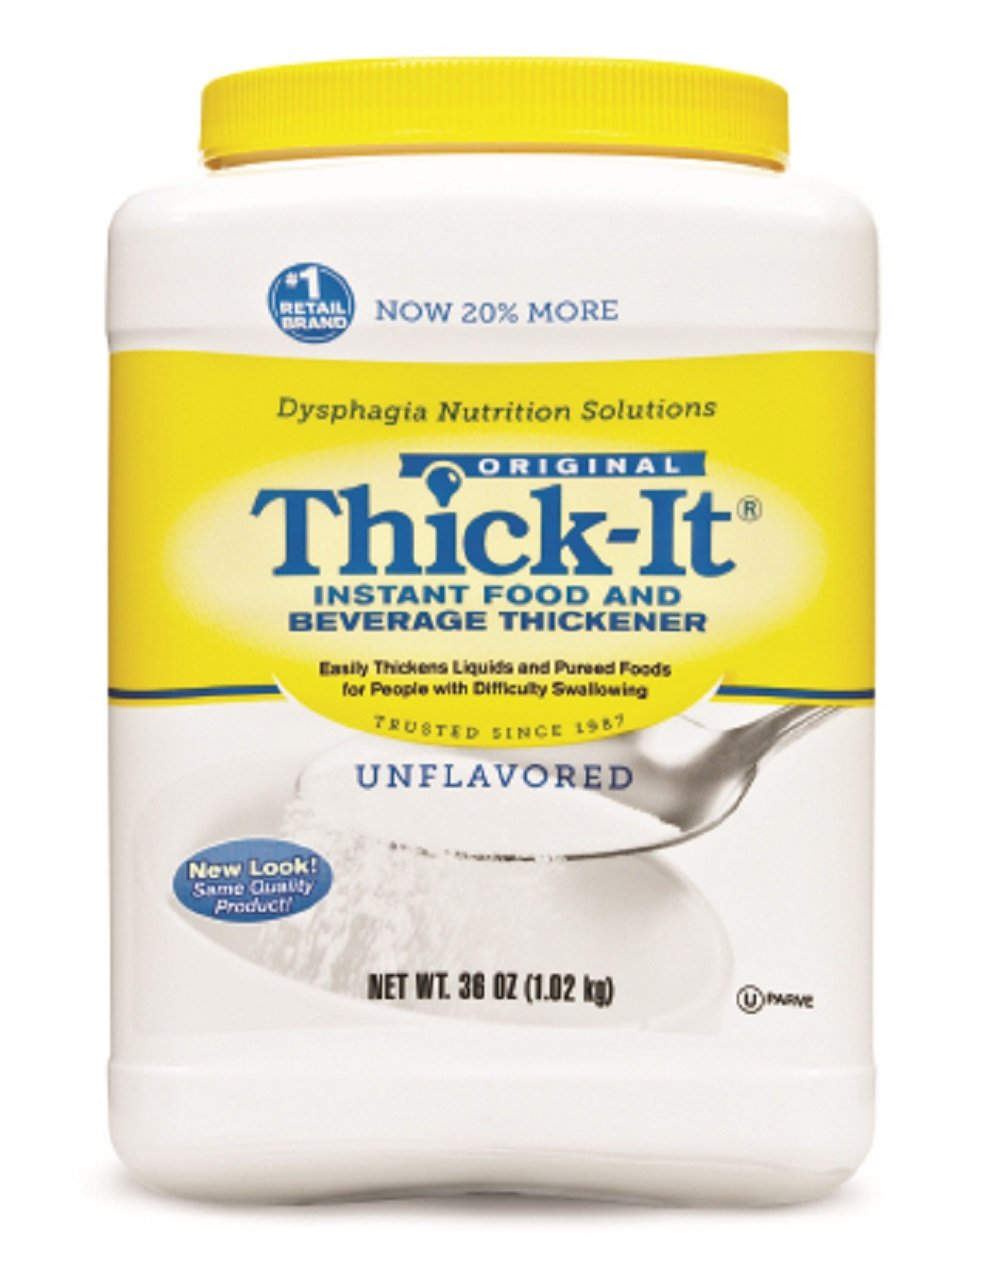 Original Thick It Food Thickener 36 Ounce, Case of 6